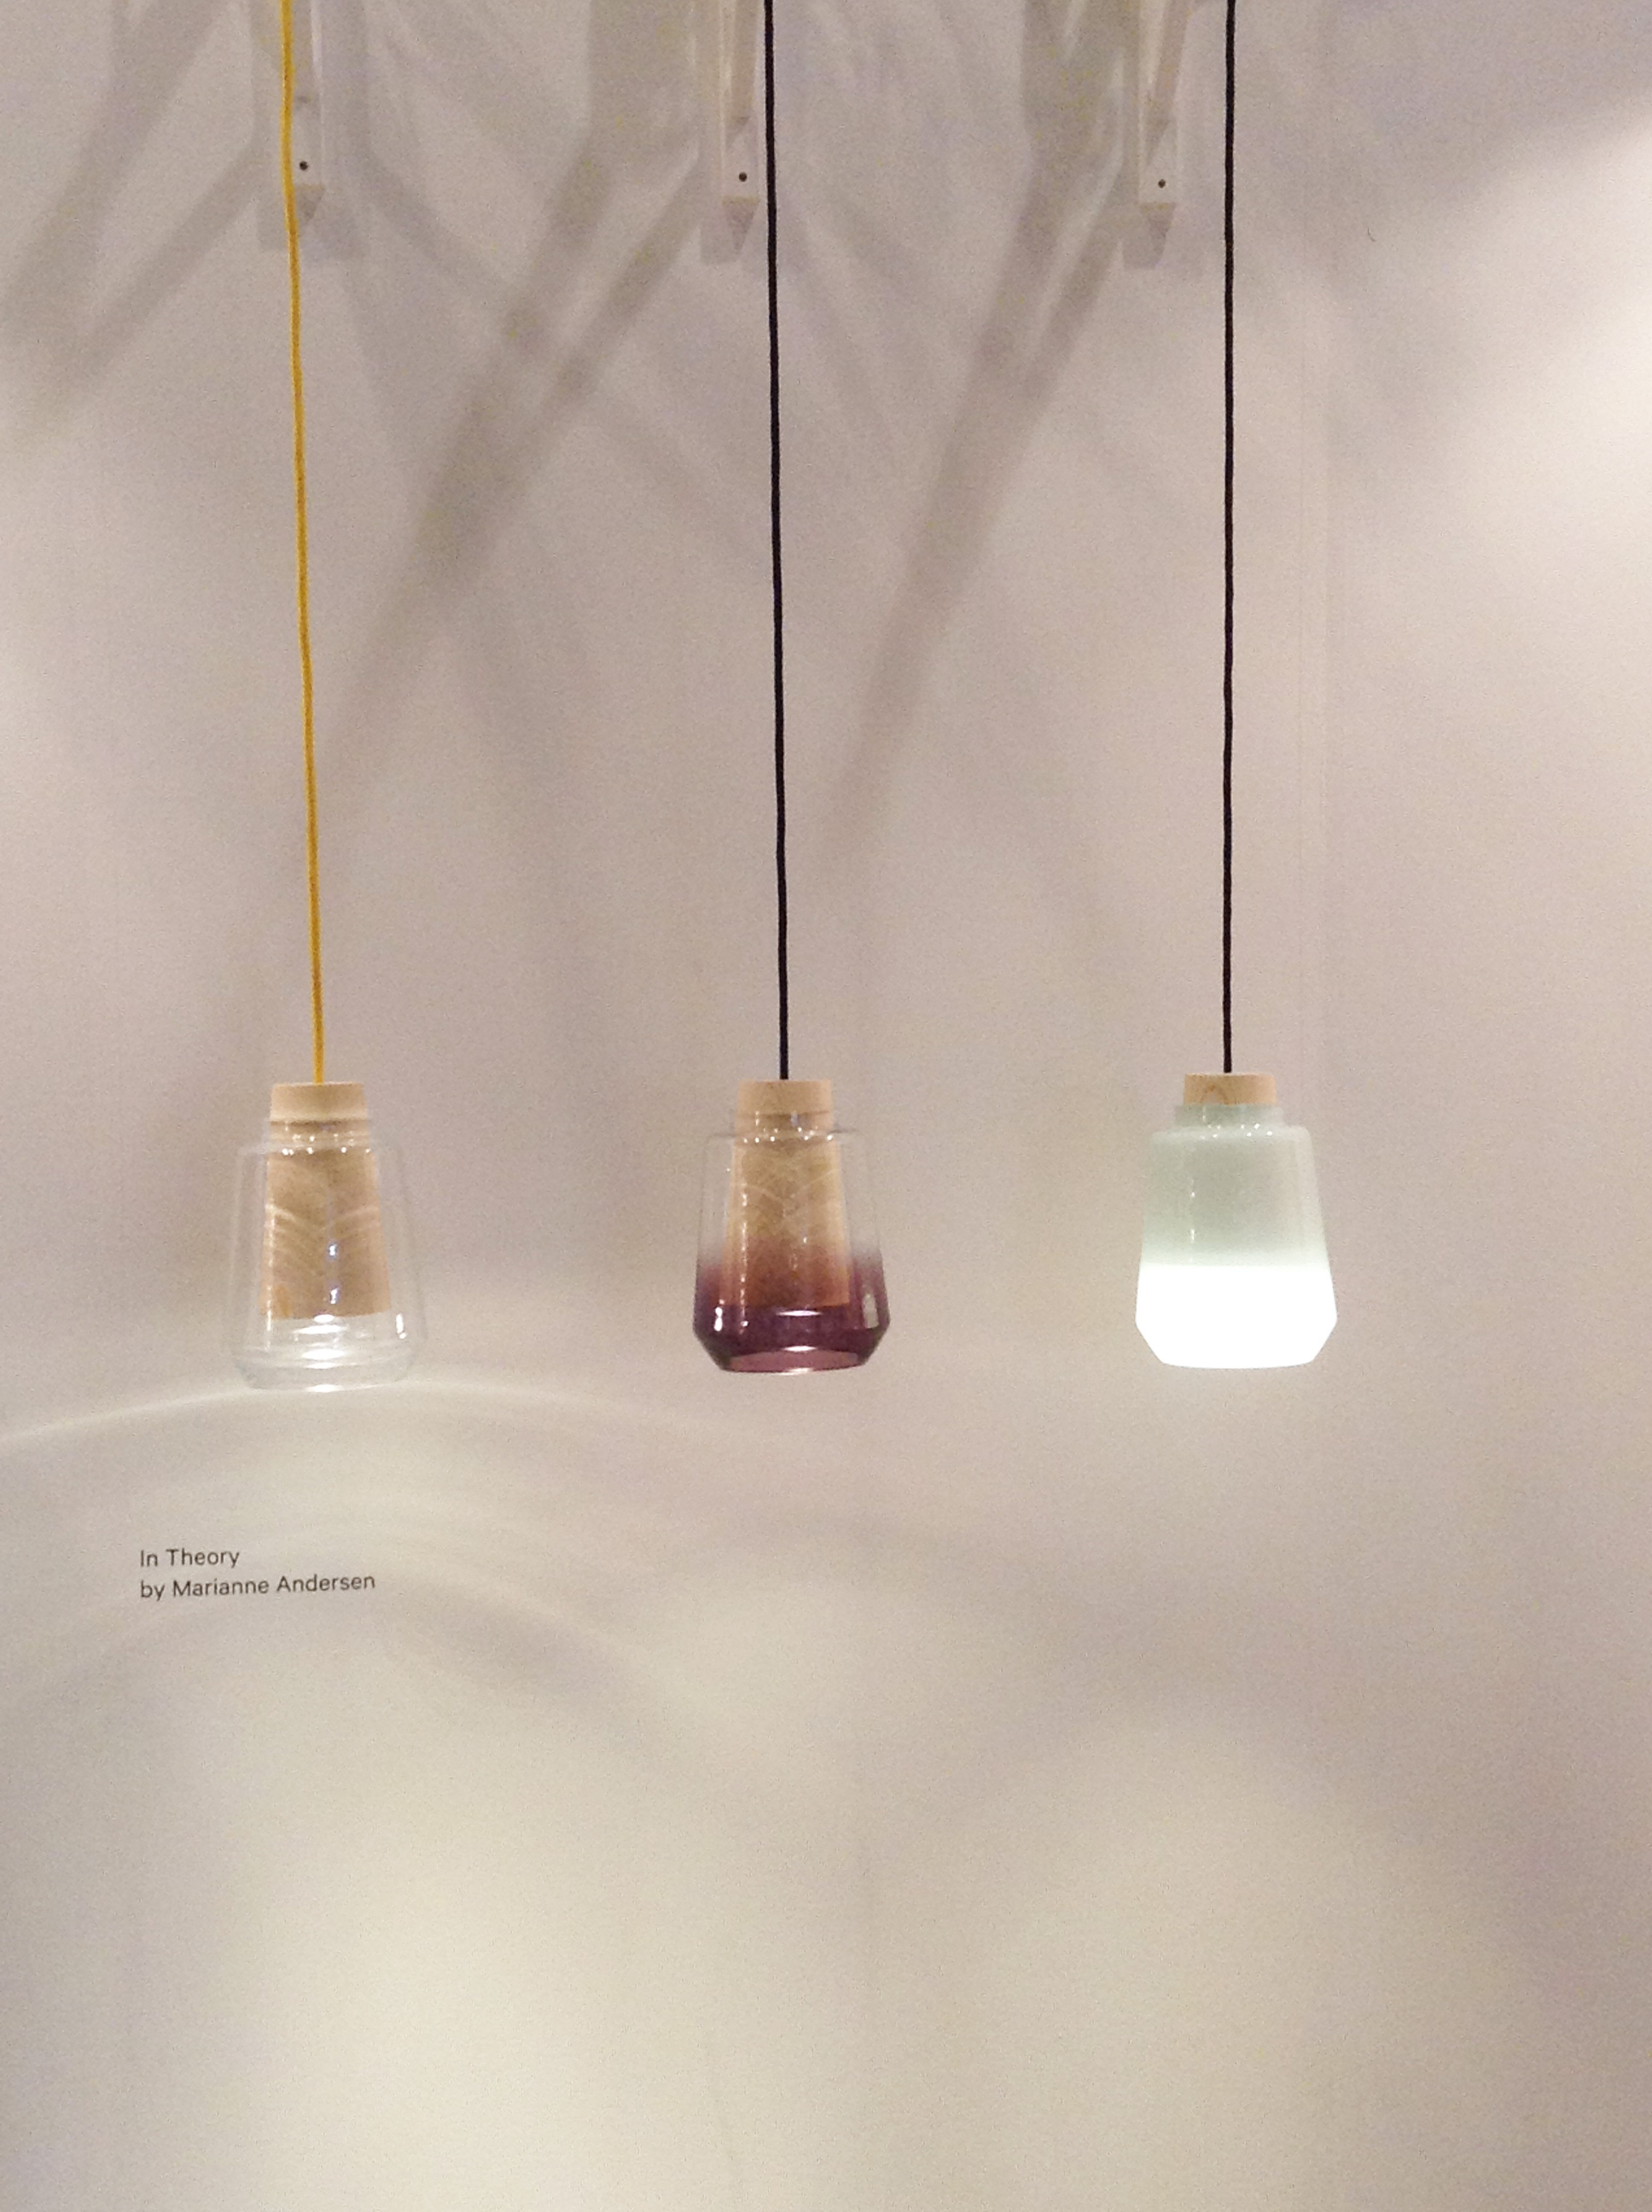 Stockholm Furniture Fair: Lights